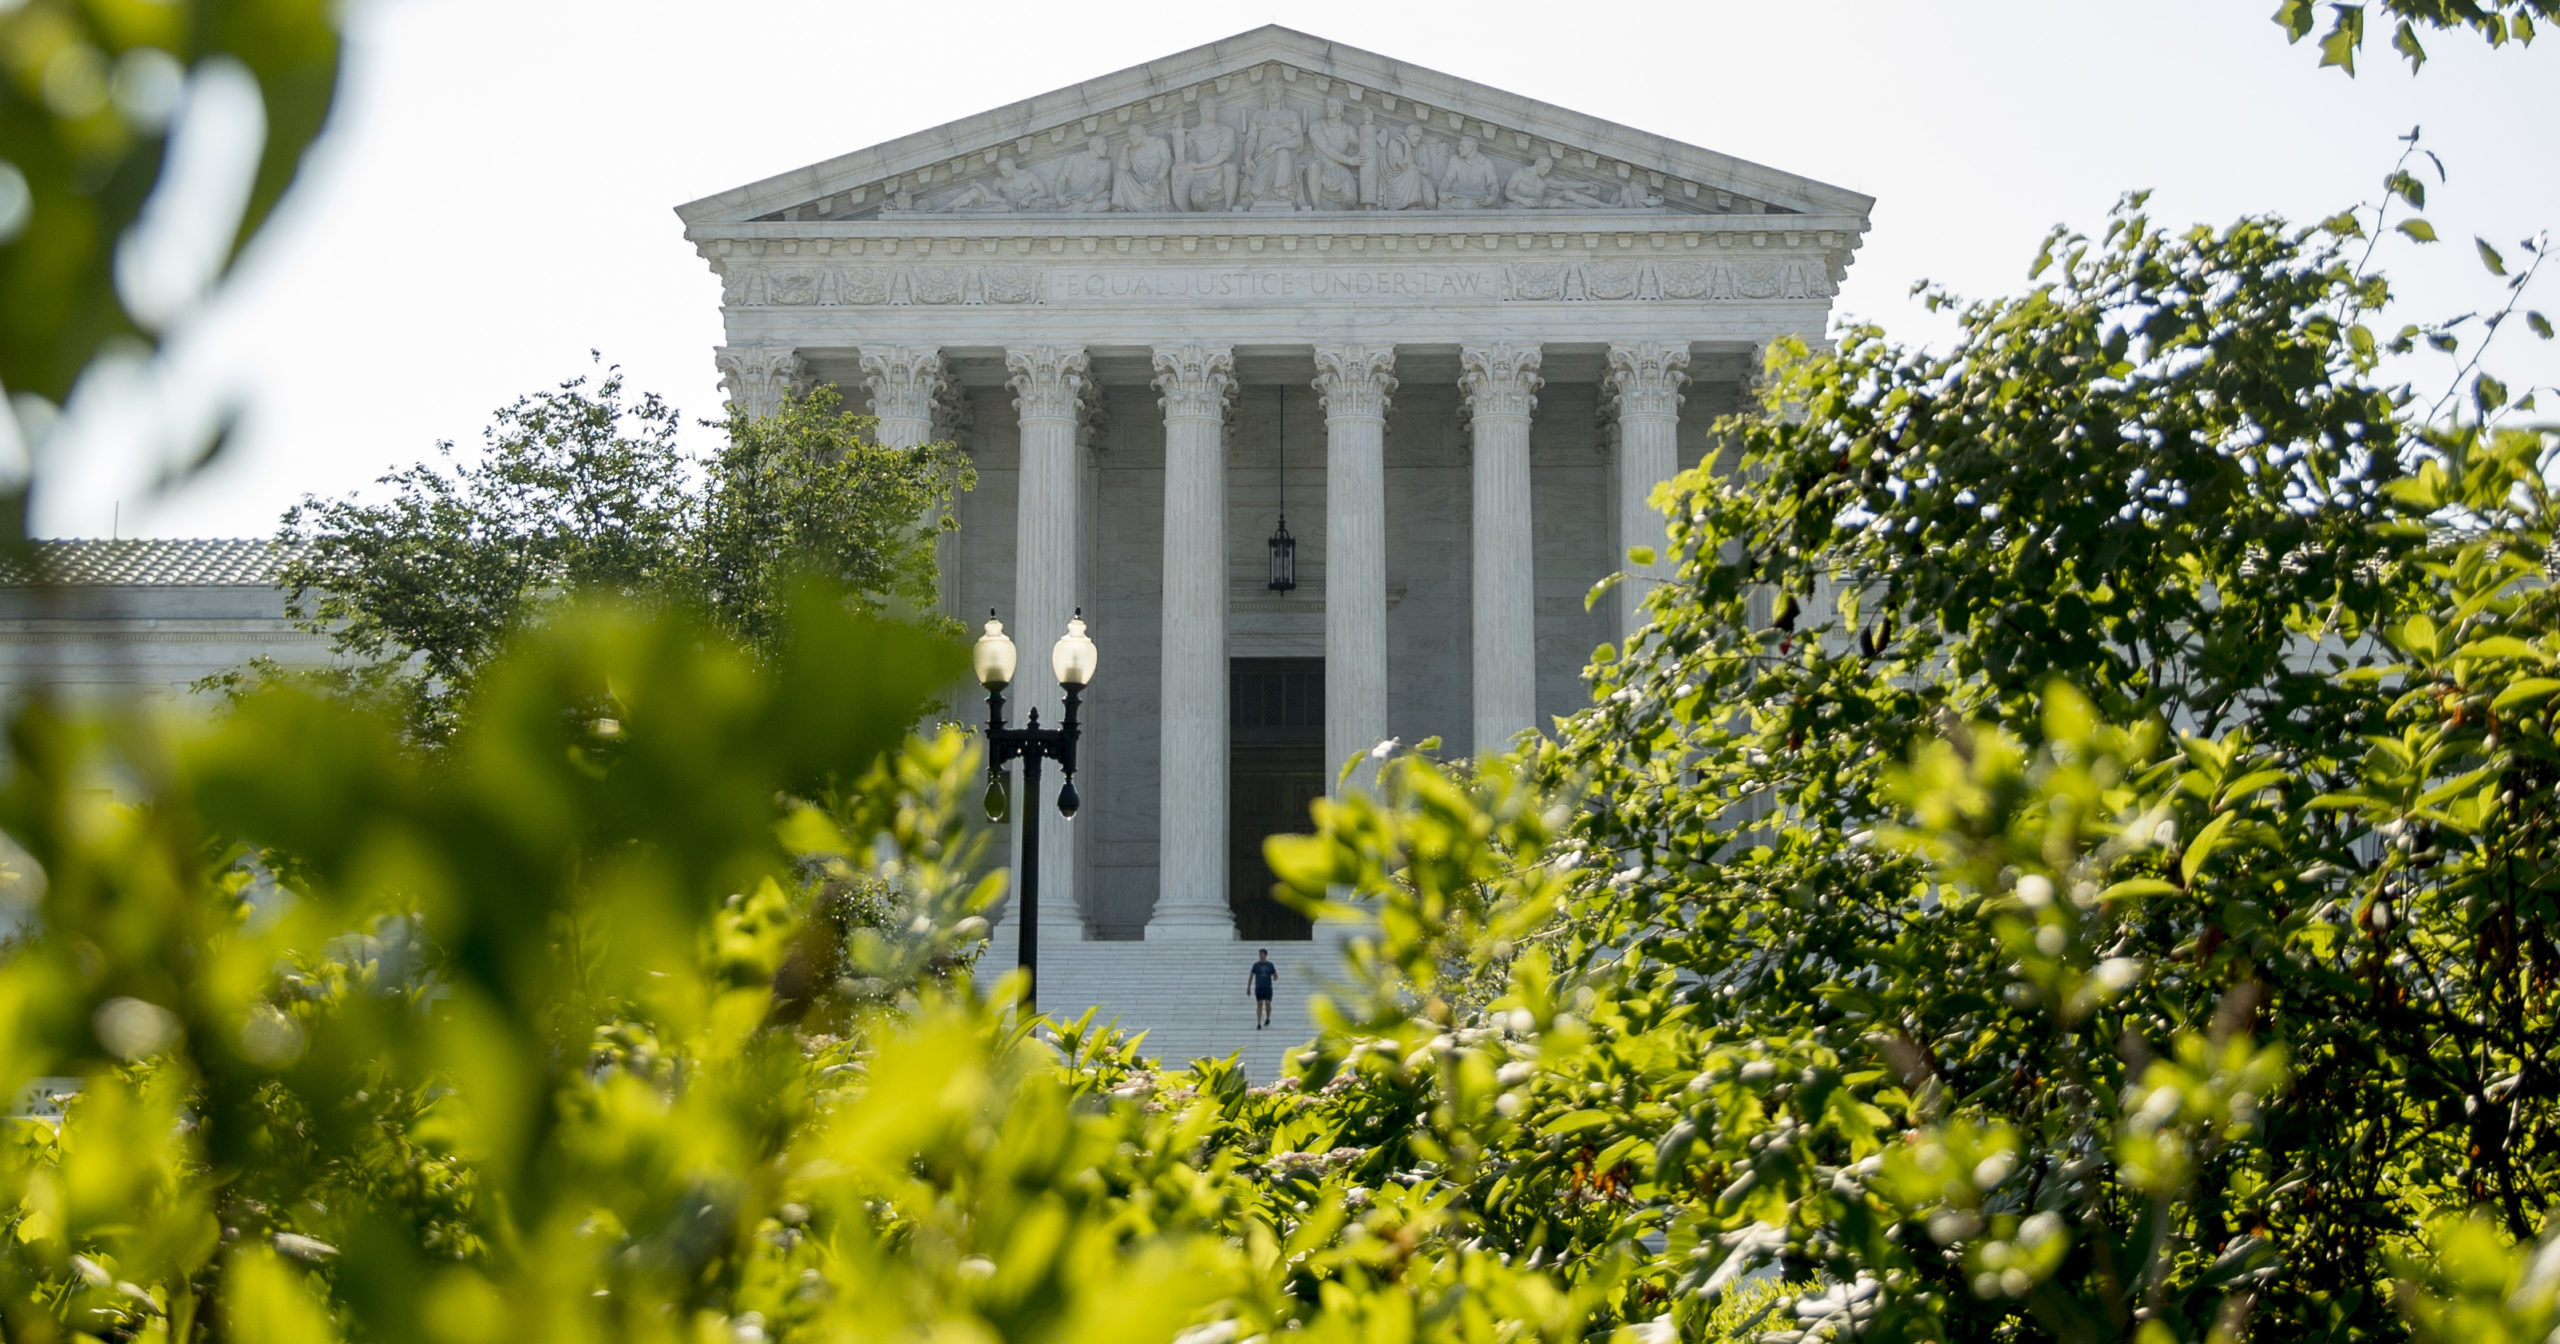 The Supreme Court is seen on July 8, 2020, in Washington, D.C.